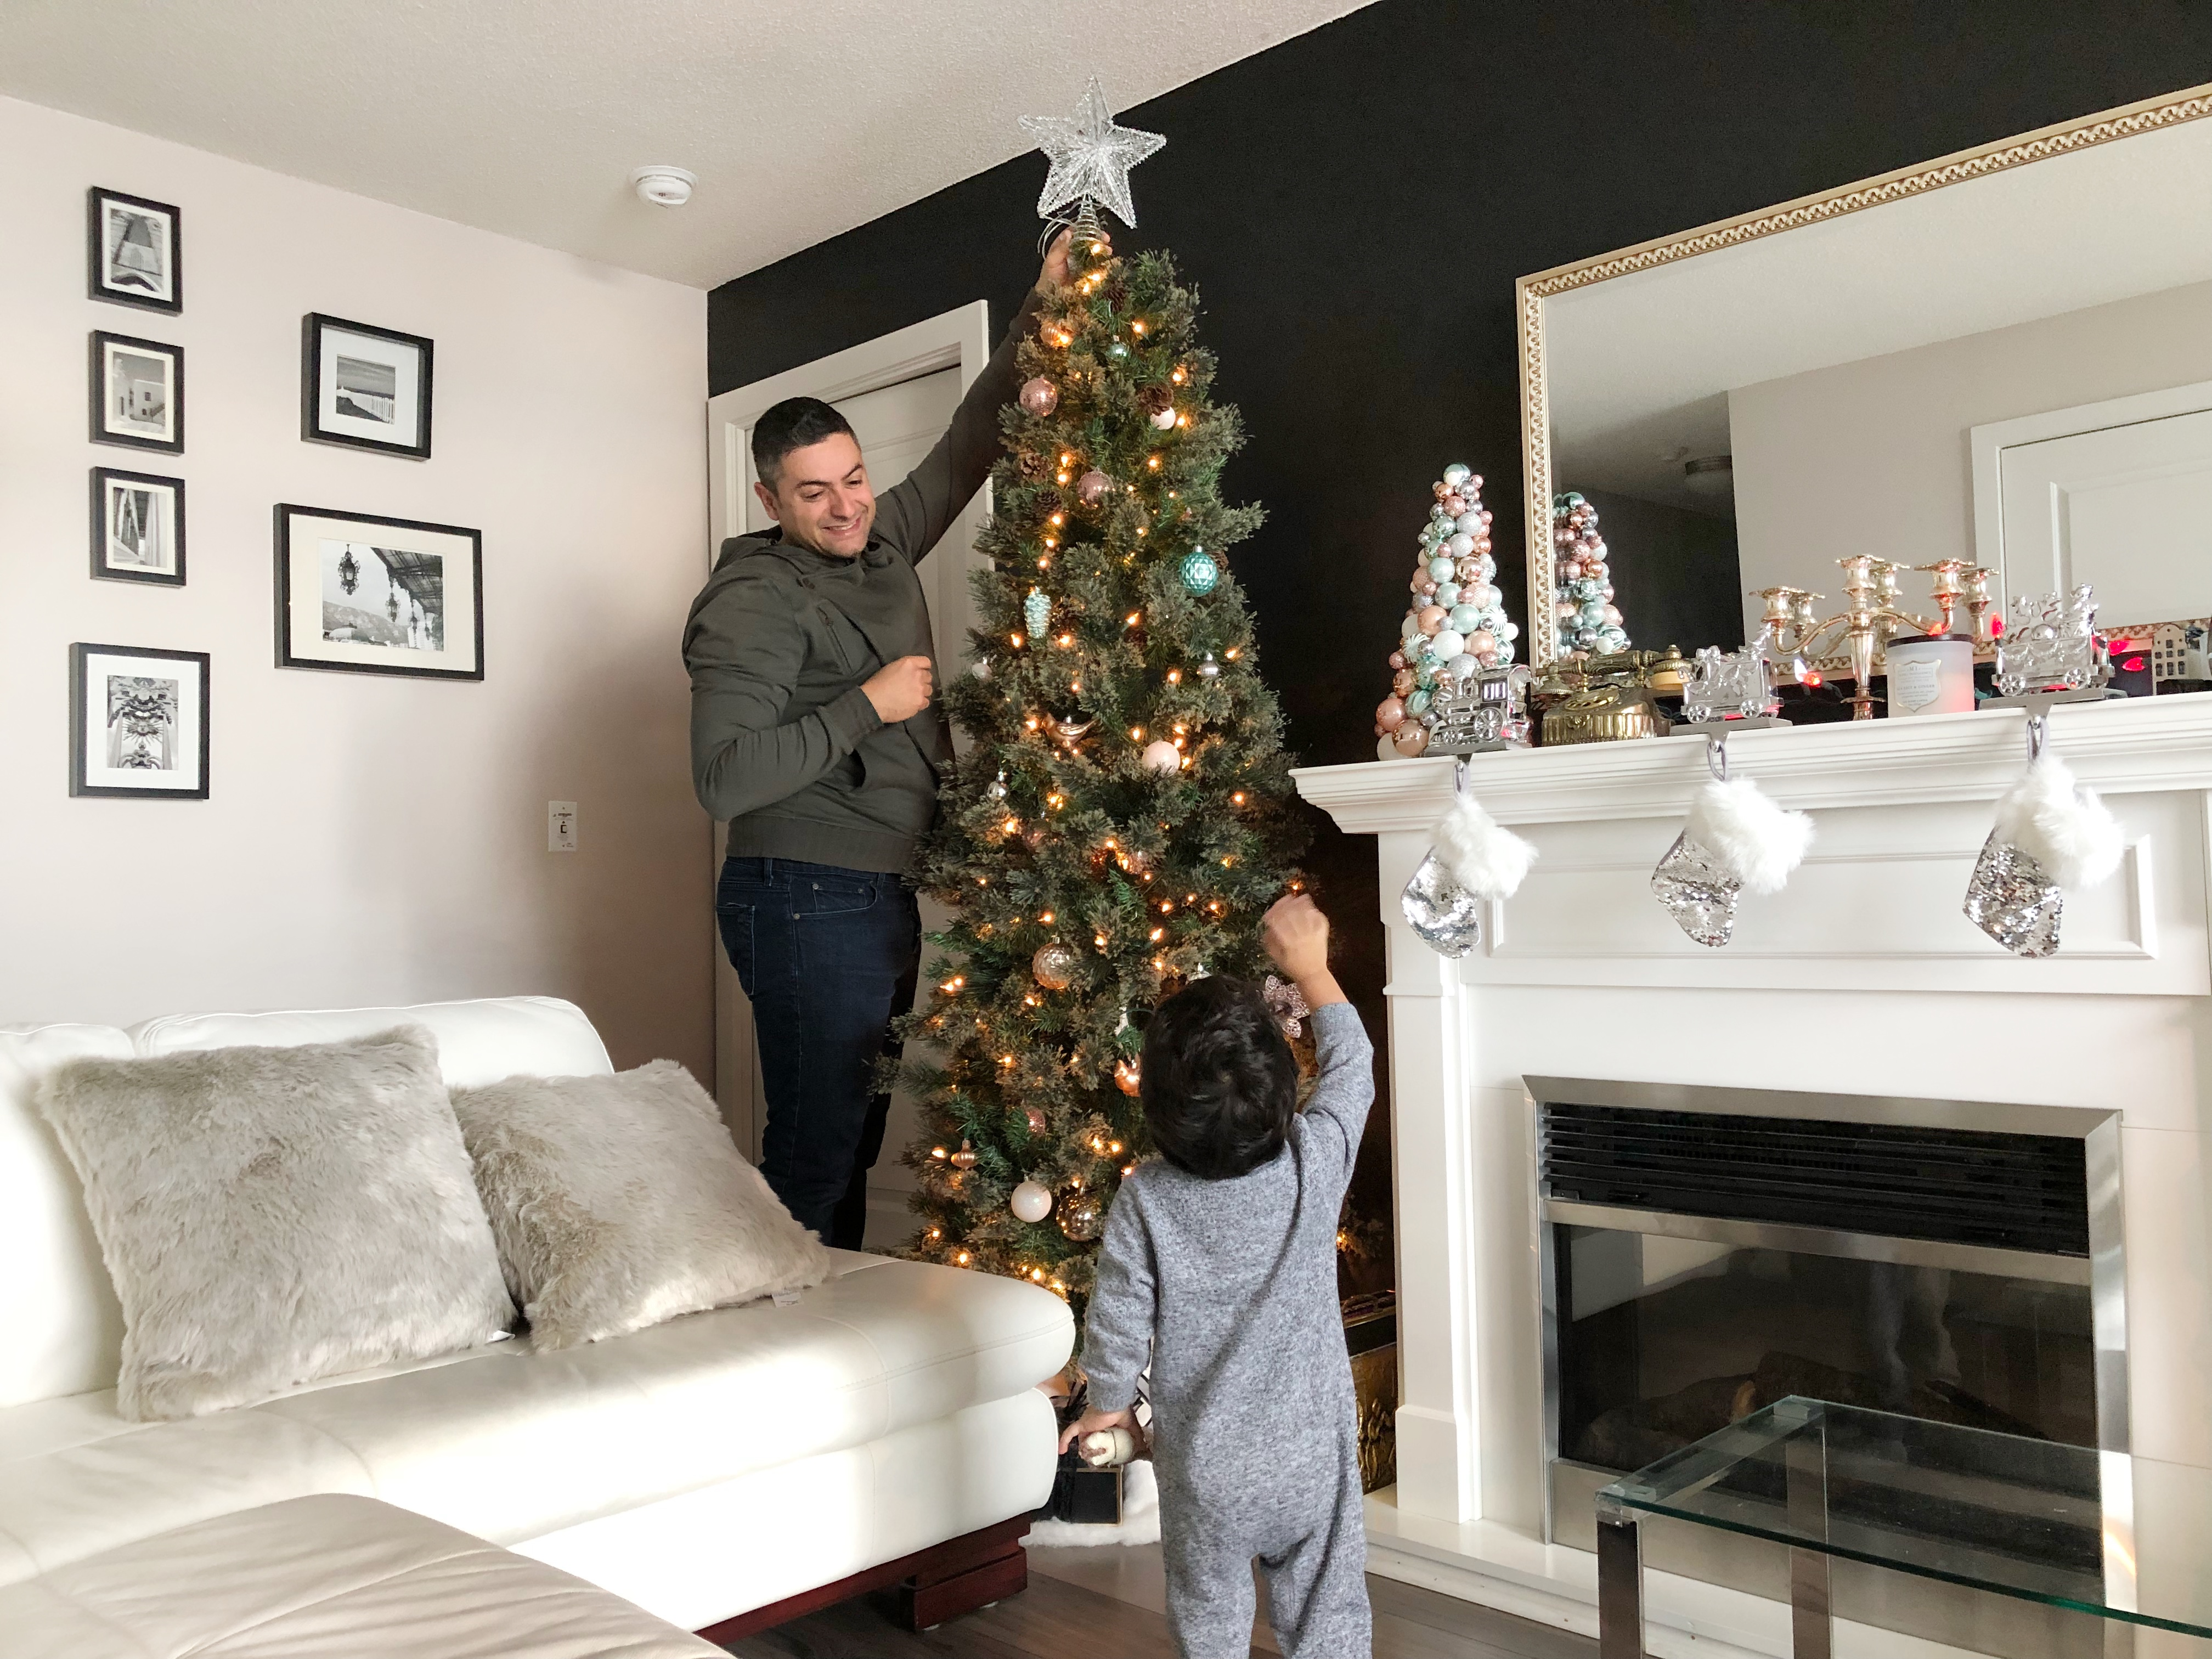 Toddler Christmas Tree.Tips For Decorating A Christmas Tree With A Toddler The